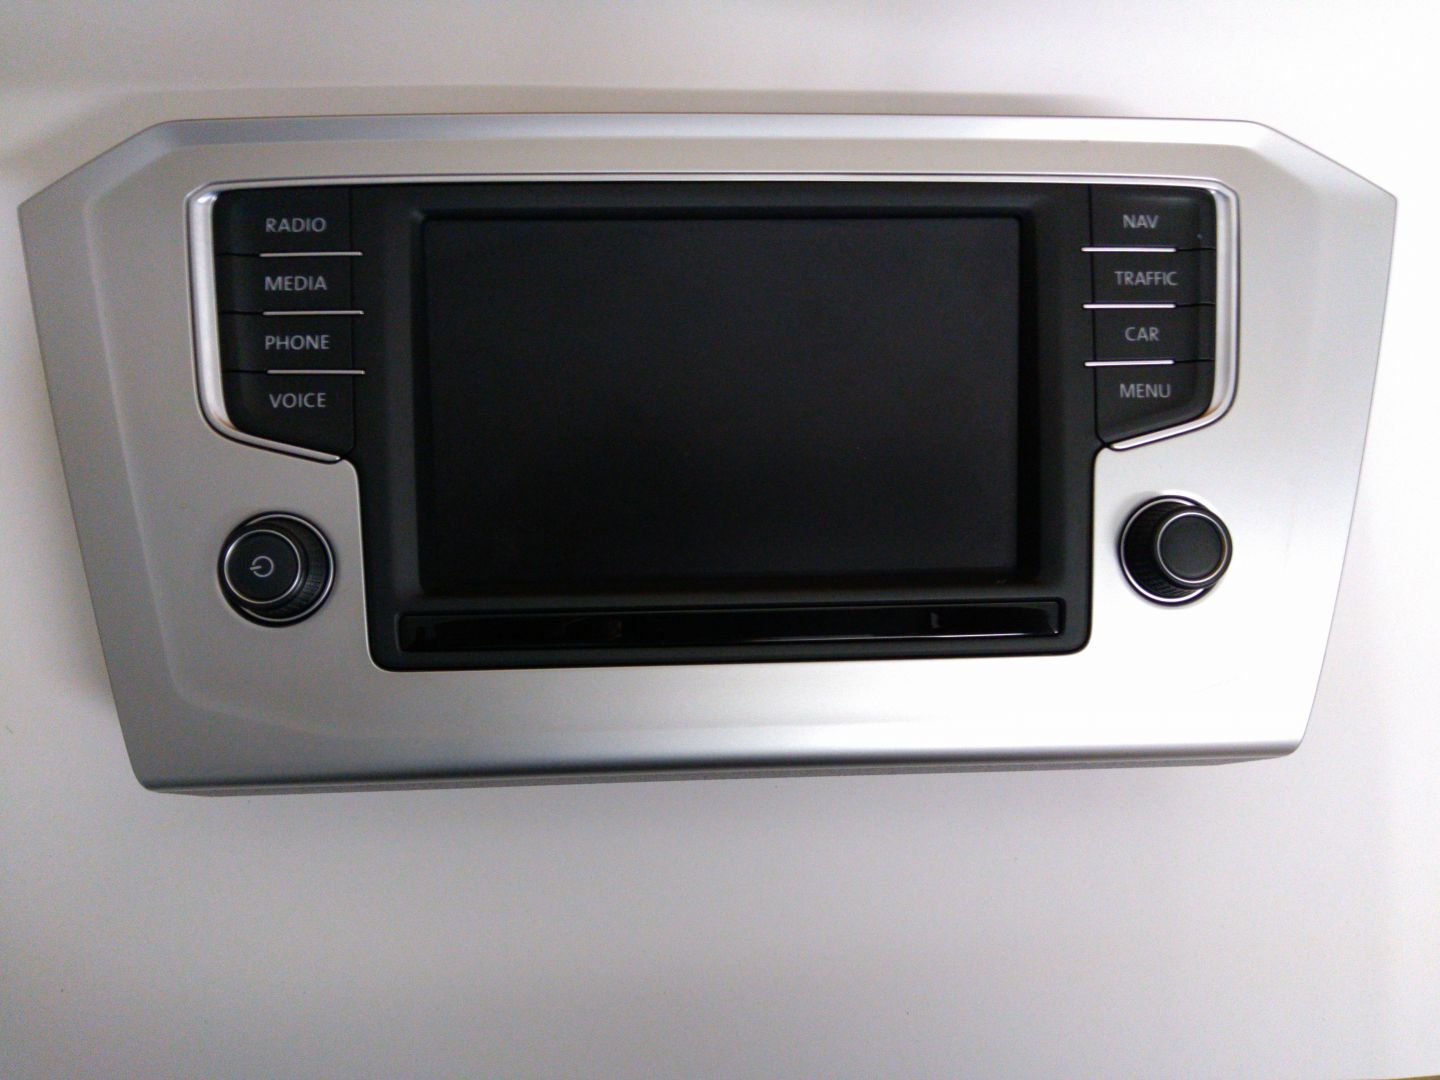 3G0919605D Front Panel with Display for VW Discover Media.jpg